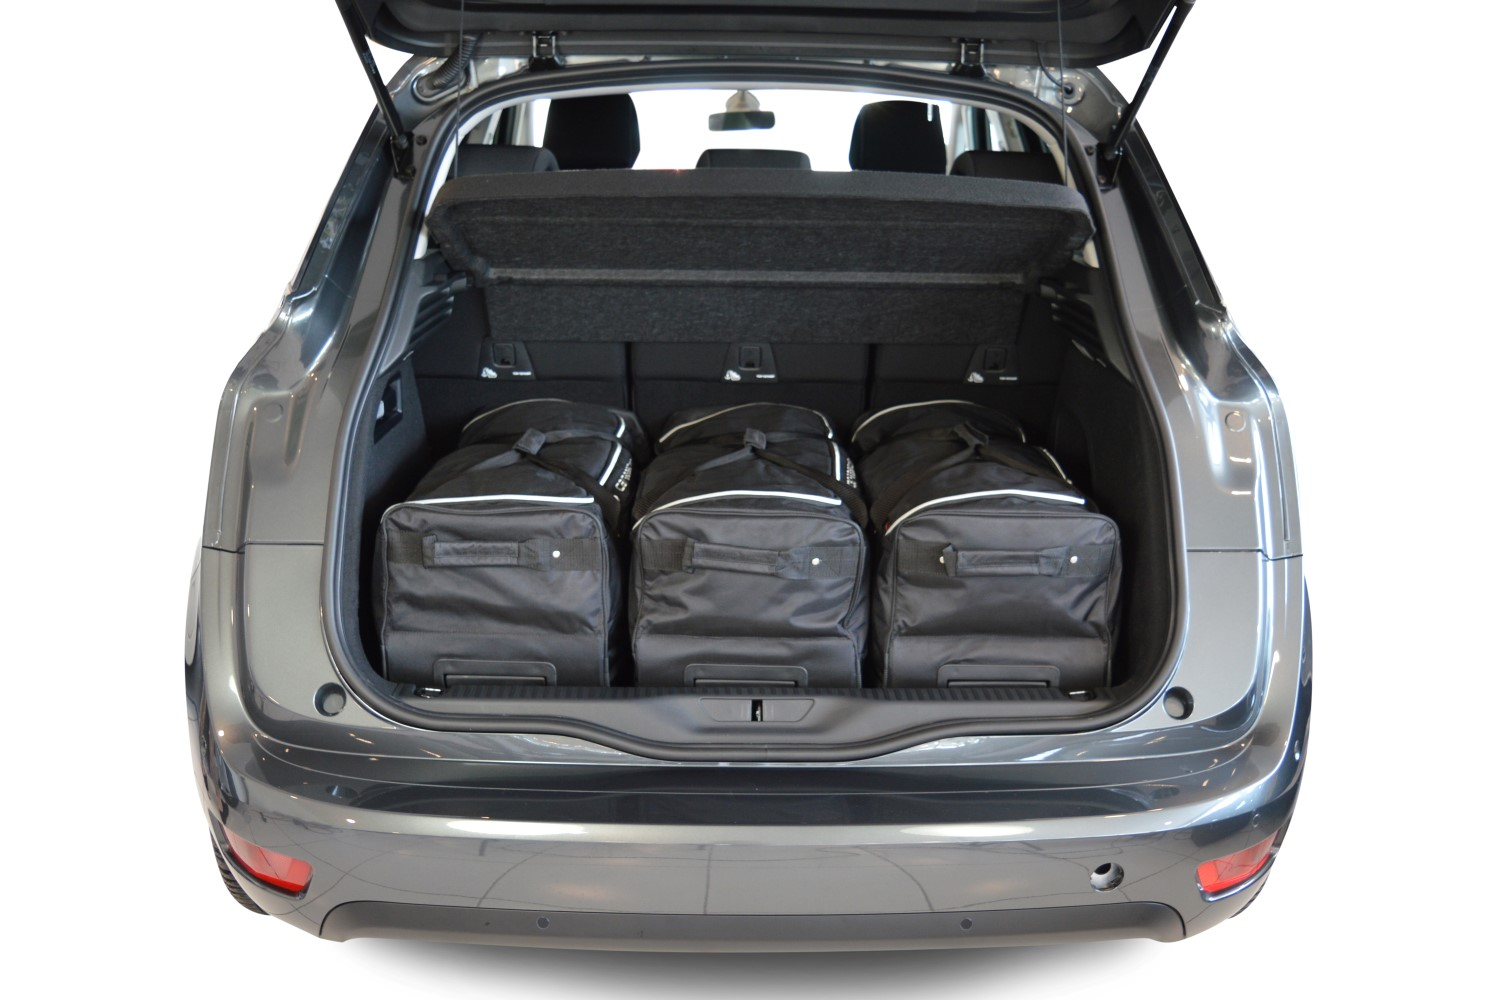 c4 citro n c4 picasso 2013 present car bags travel bags. Black Bedroom Furniture Sets. Home Design Ideas